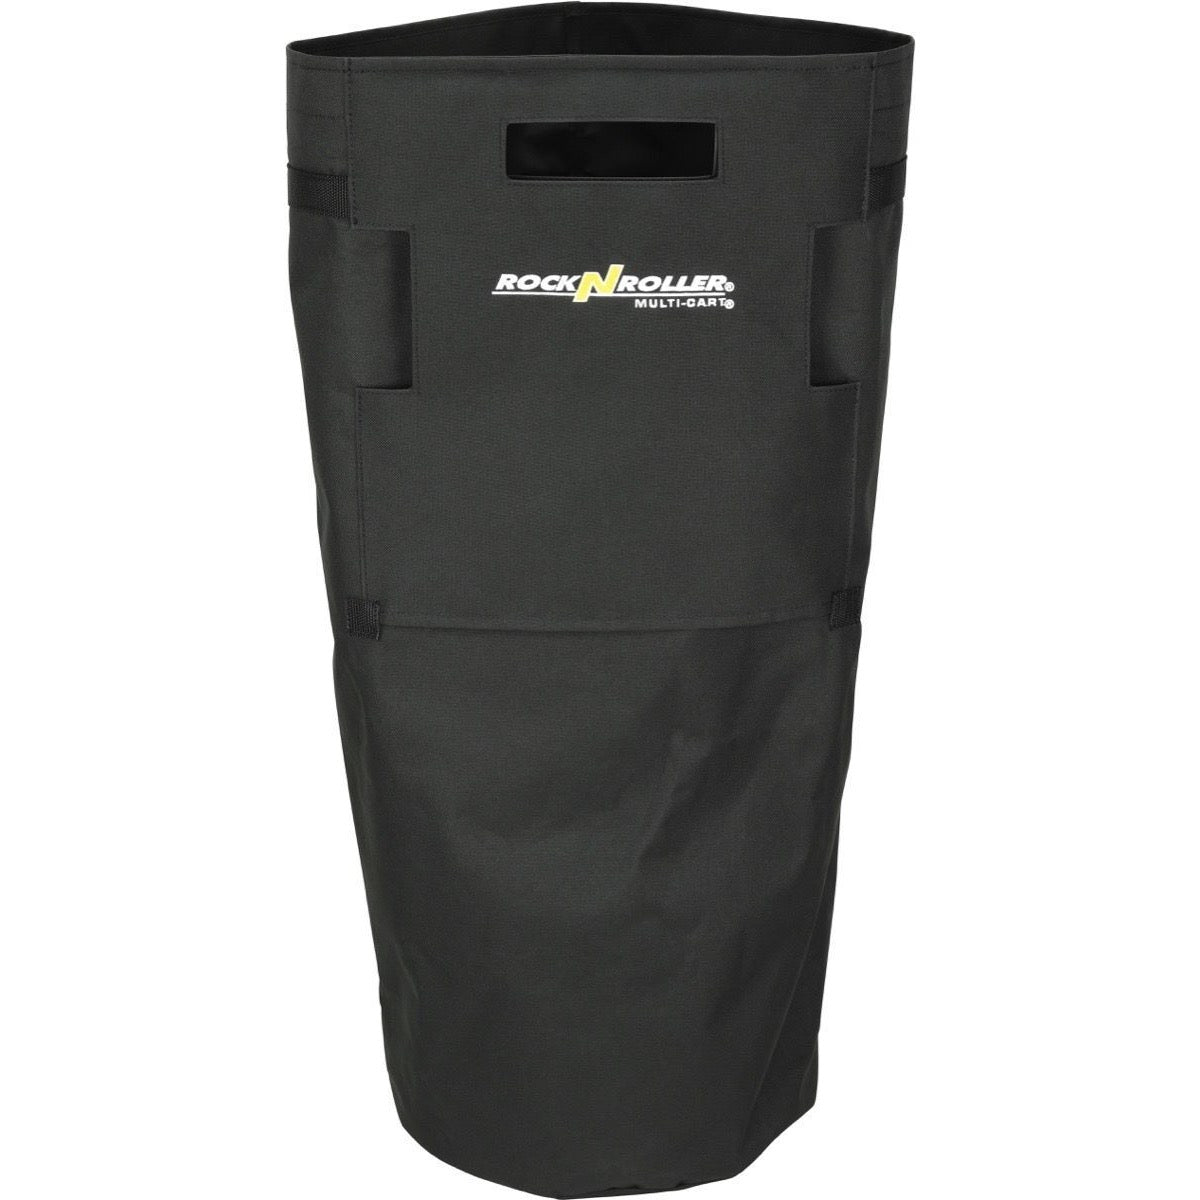 RocknRoller Handle Bag with Rigid Bottom, RSA-HBR8, Fits R8, R10, R12 Carts